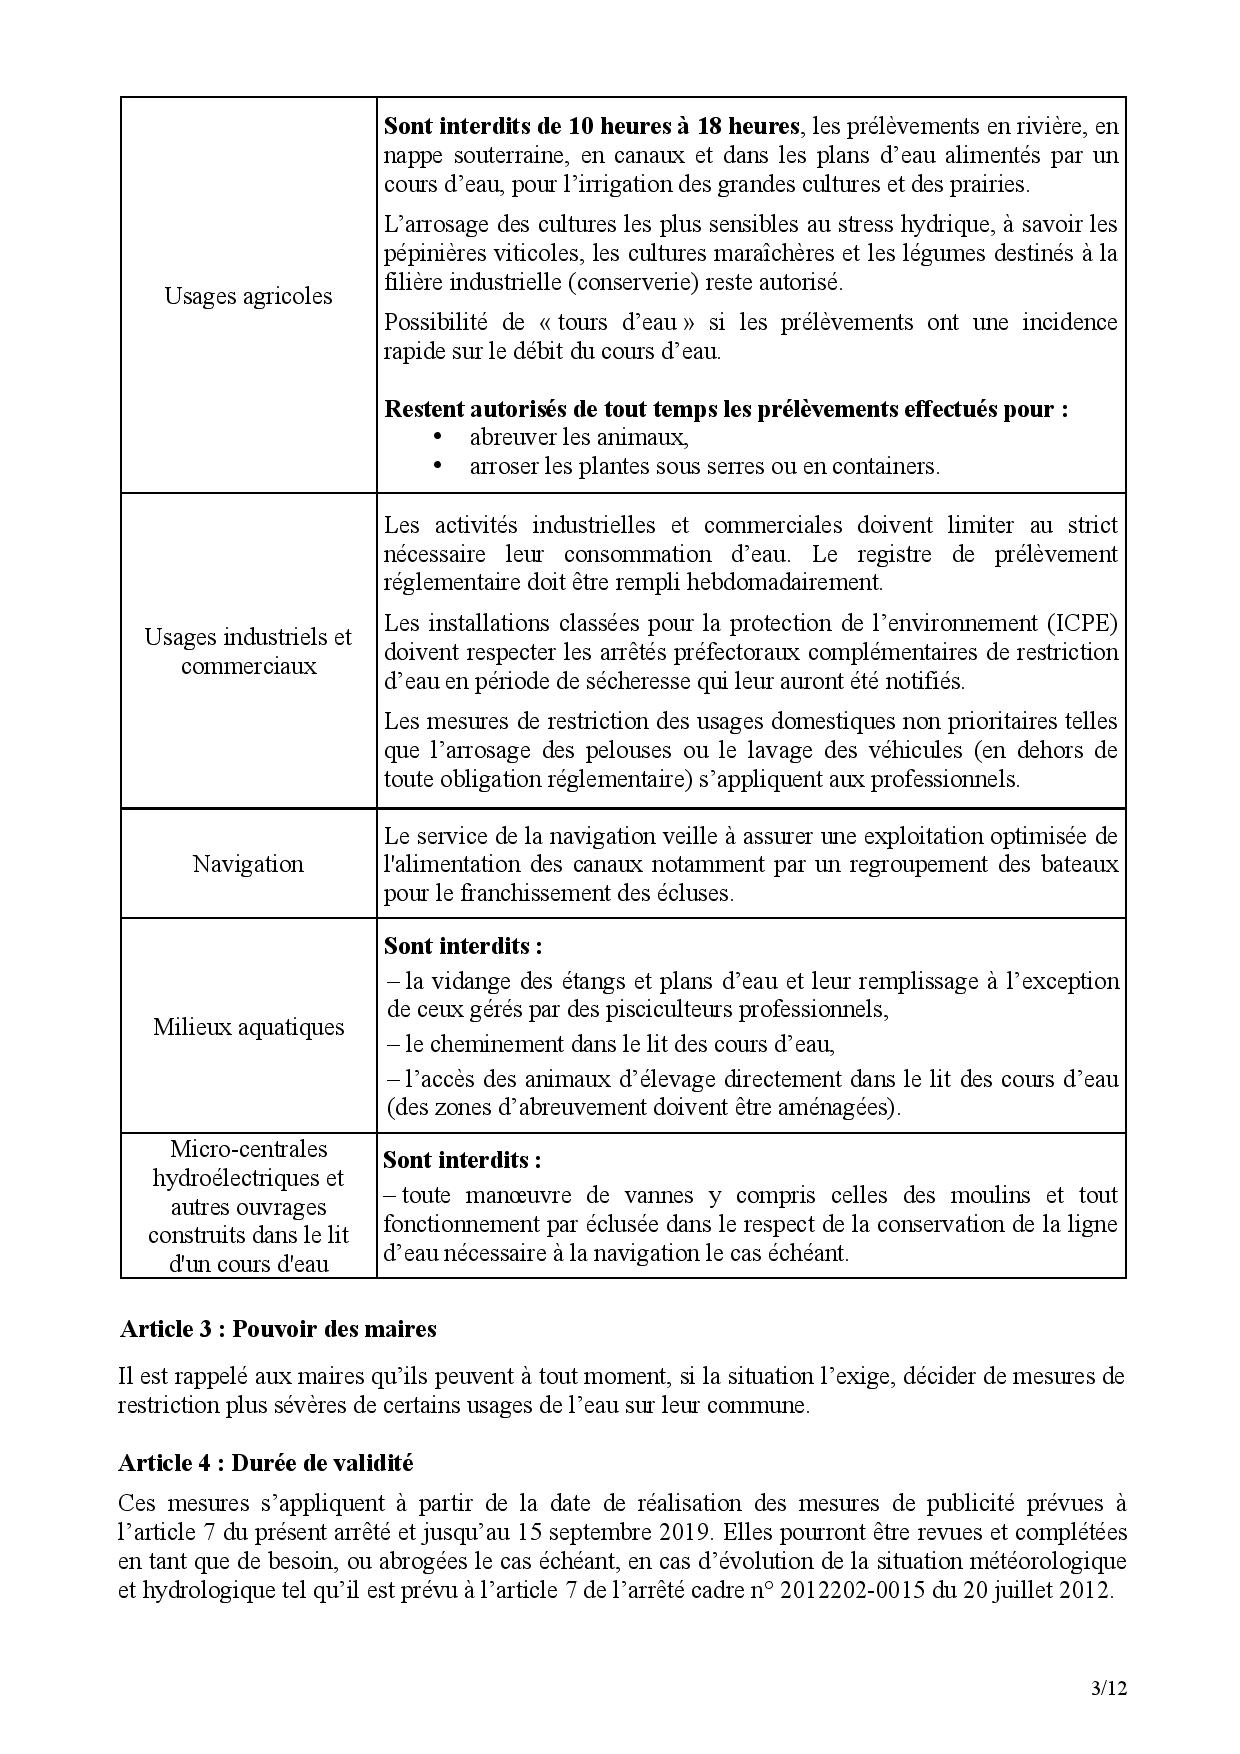 Arrêté restriction eau n°2-page-003